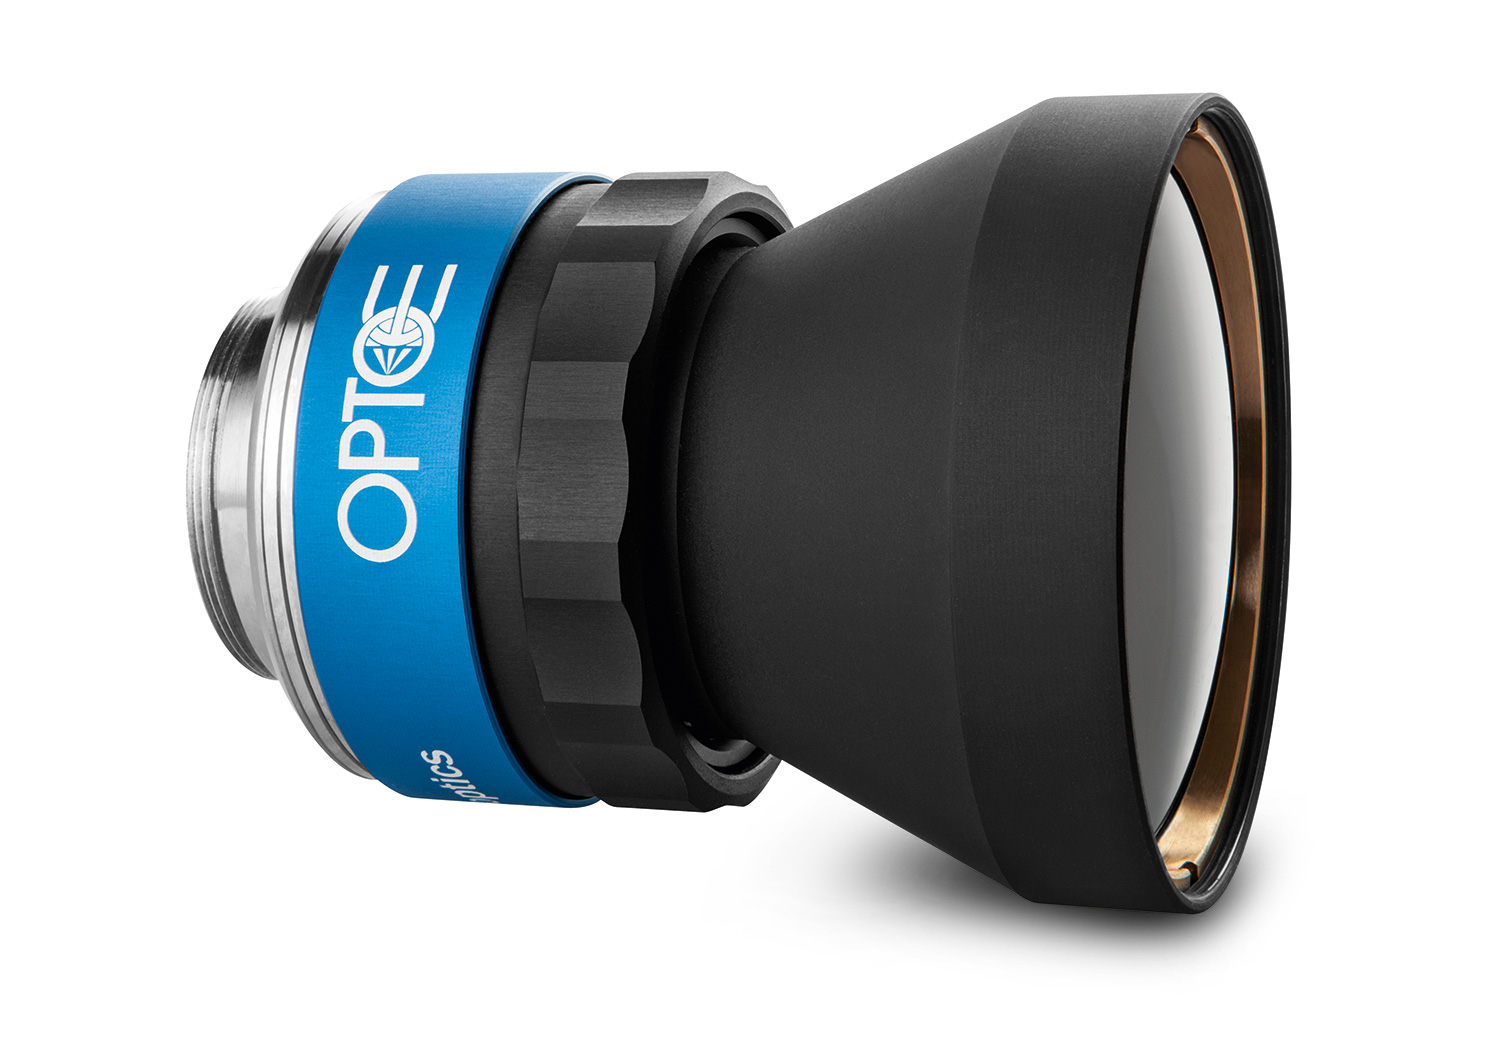 LWIR fixed focal length lenses for uncooled sensors up to 21mm